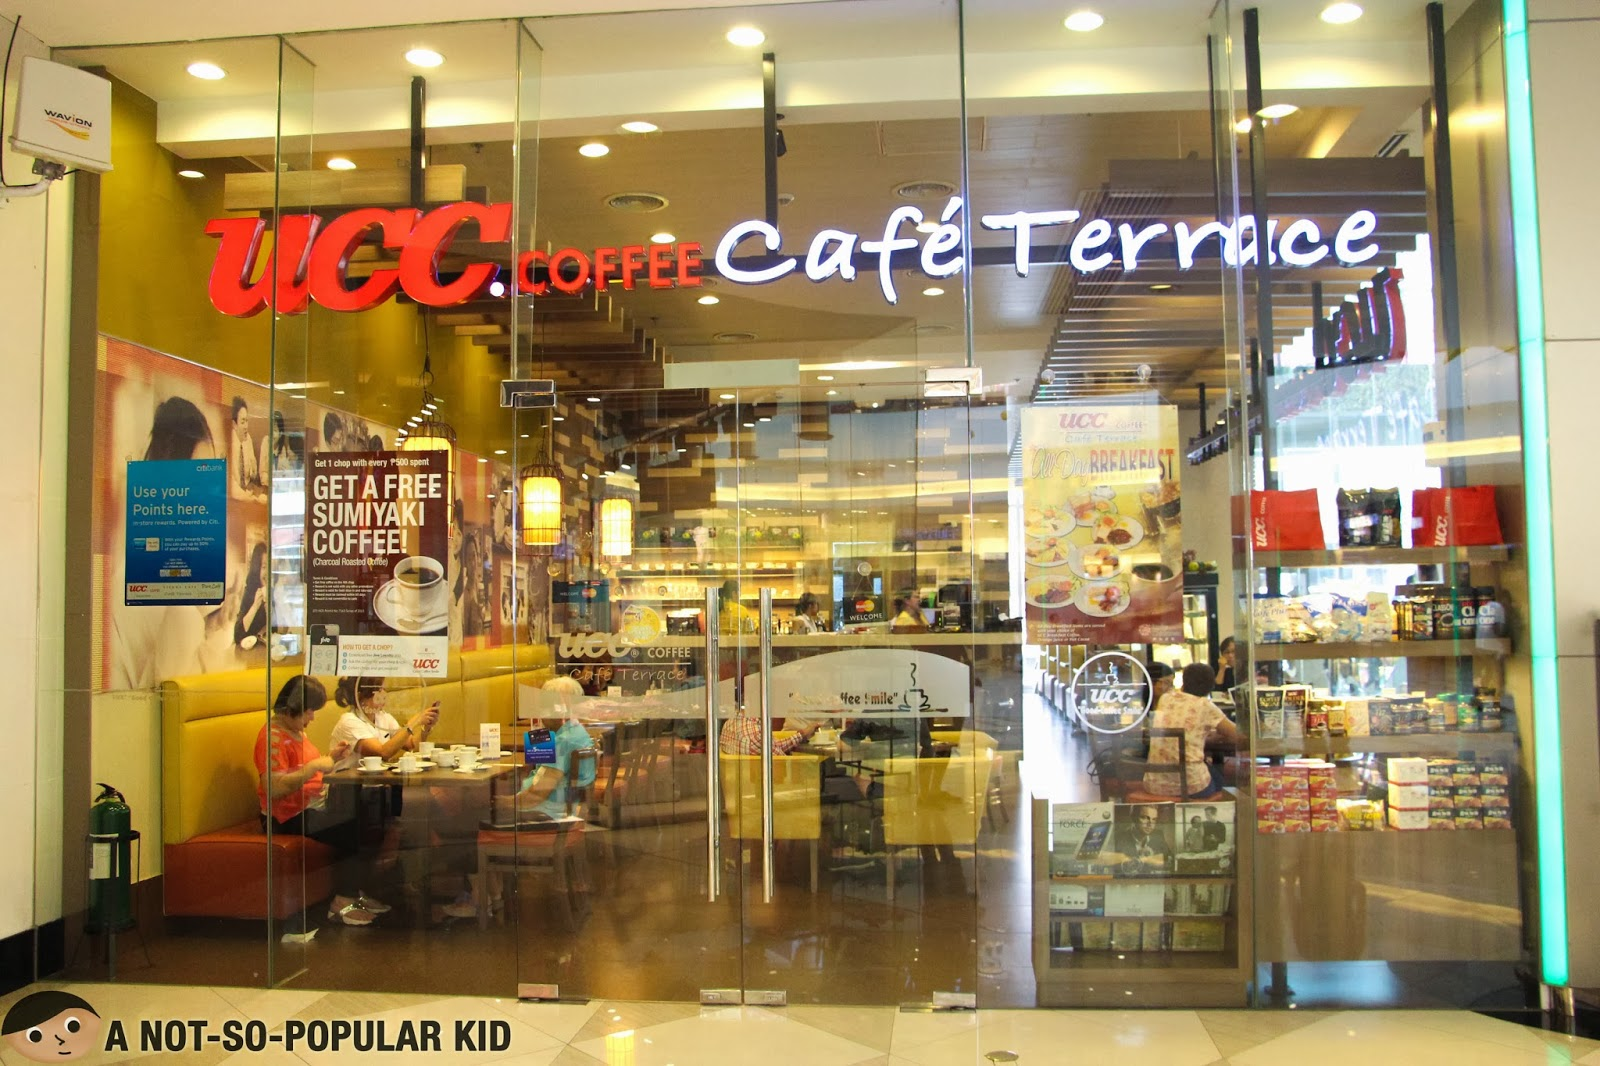 UCC Coffee Cafe Terrace in Lucky Chinatown Mall